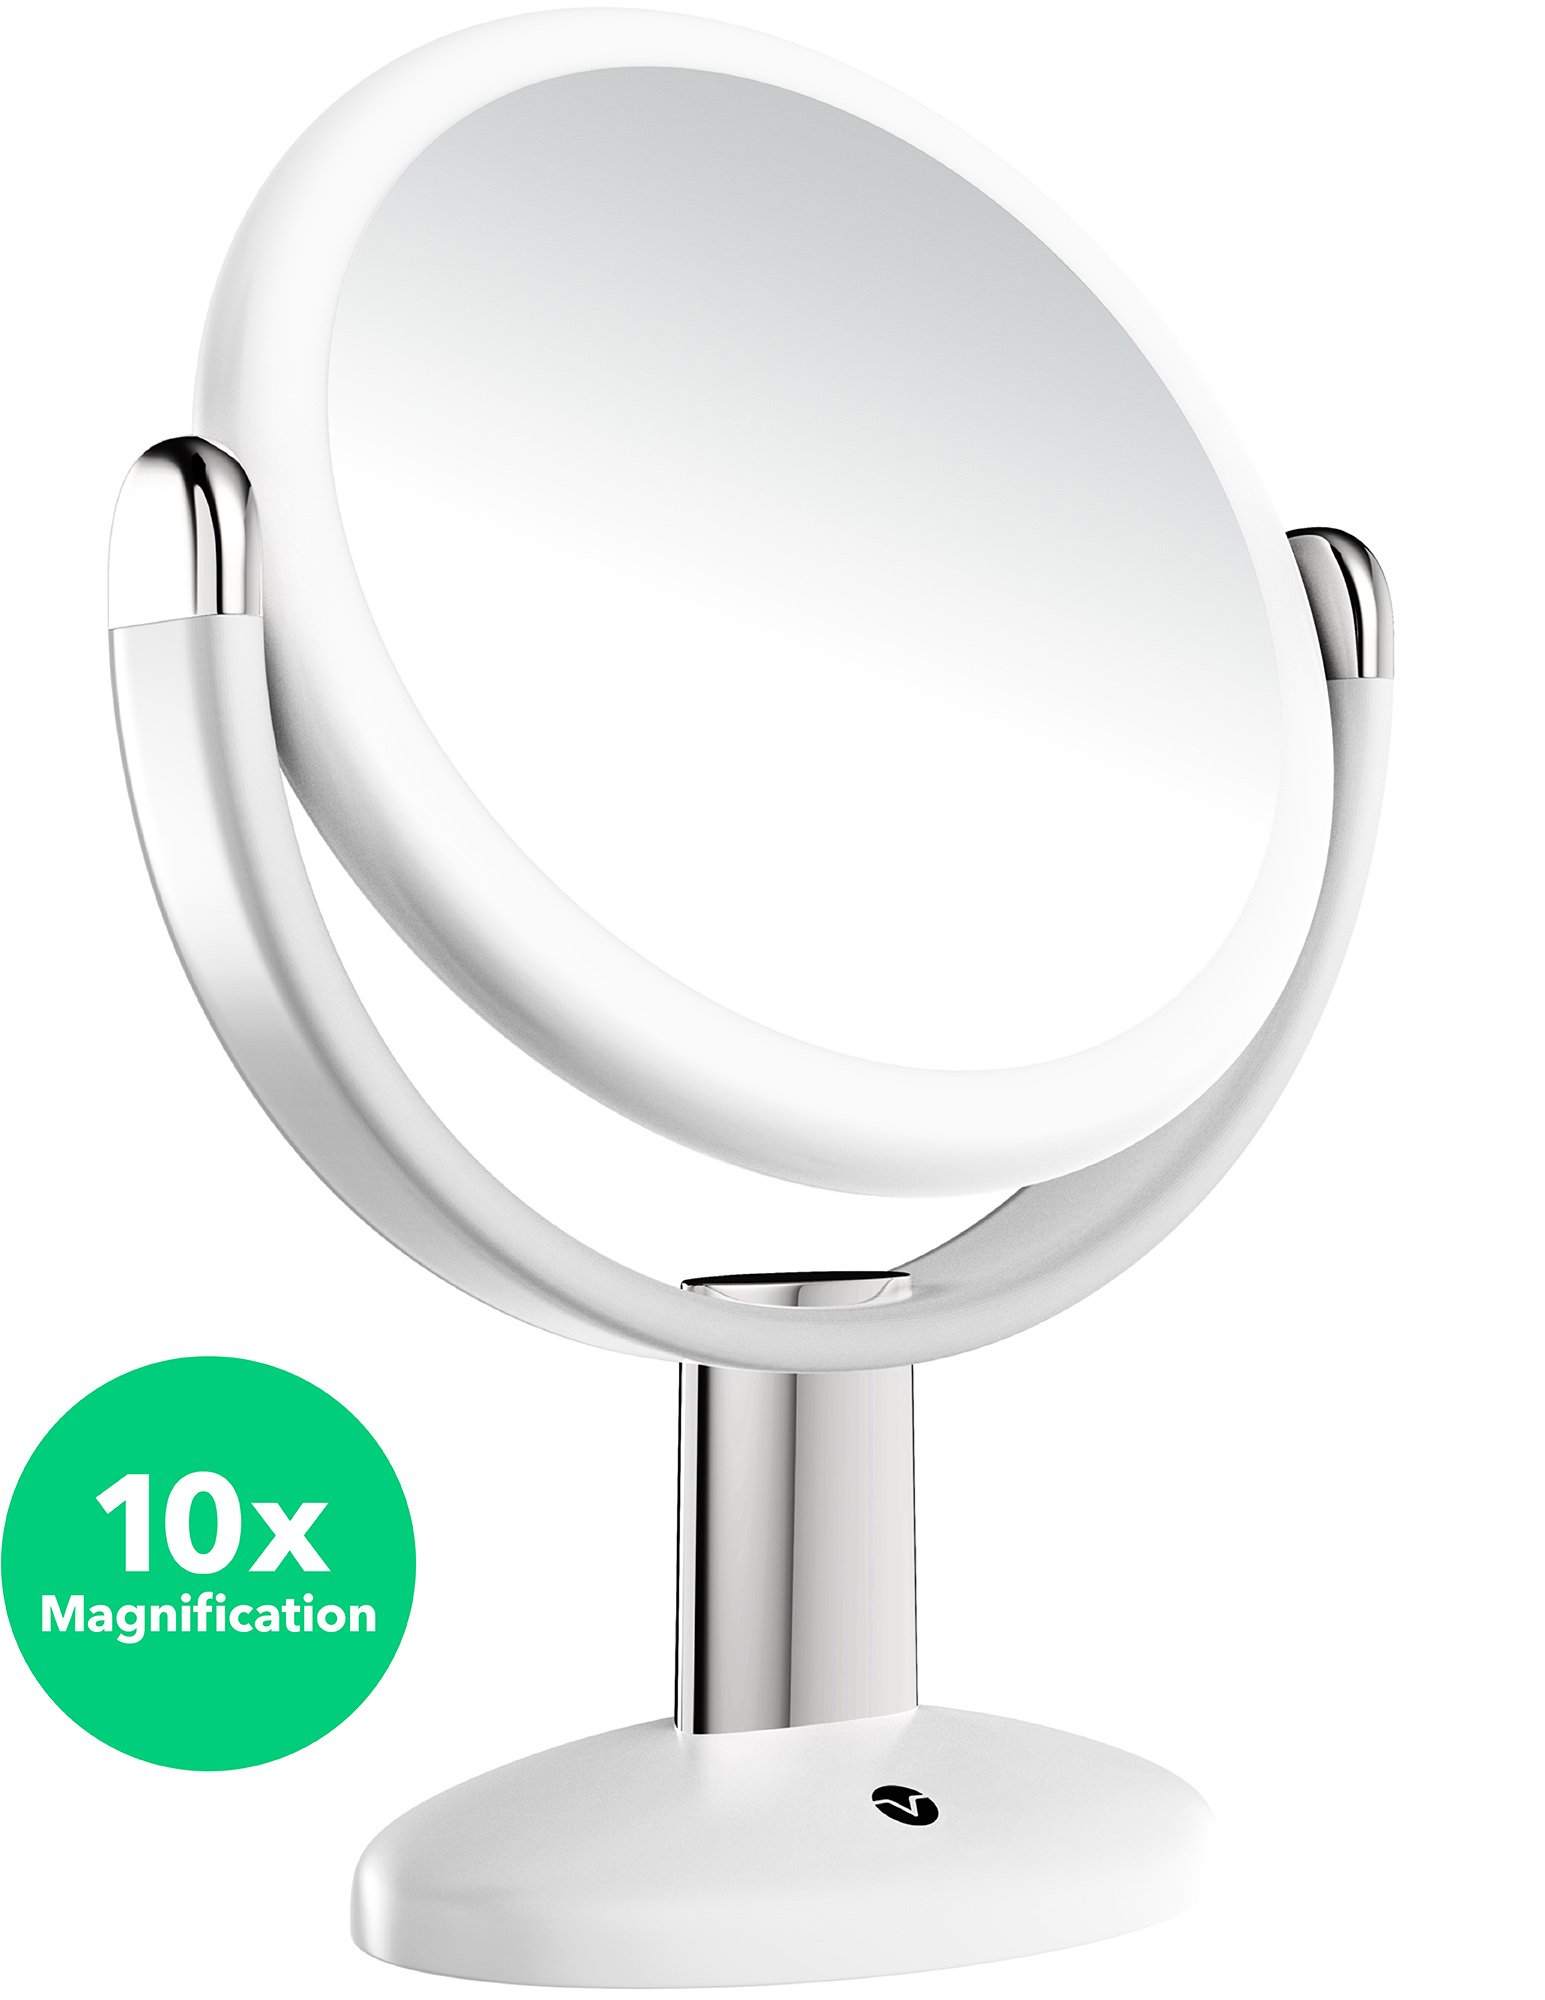 Vremi 10x Magnified Vanity Mirror - 7 Inch Round Makeup Cosmetic Mirror for Bathroom or Bedroom Table Top - Portable Double Sided Glass Mirror Stand with 360 Degree Swivel - White by Vremi